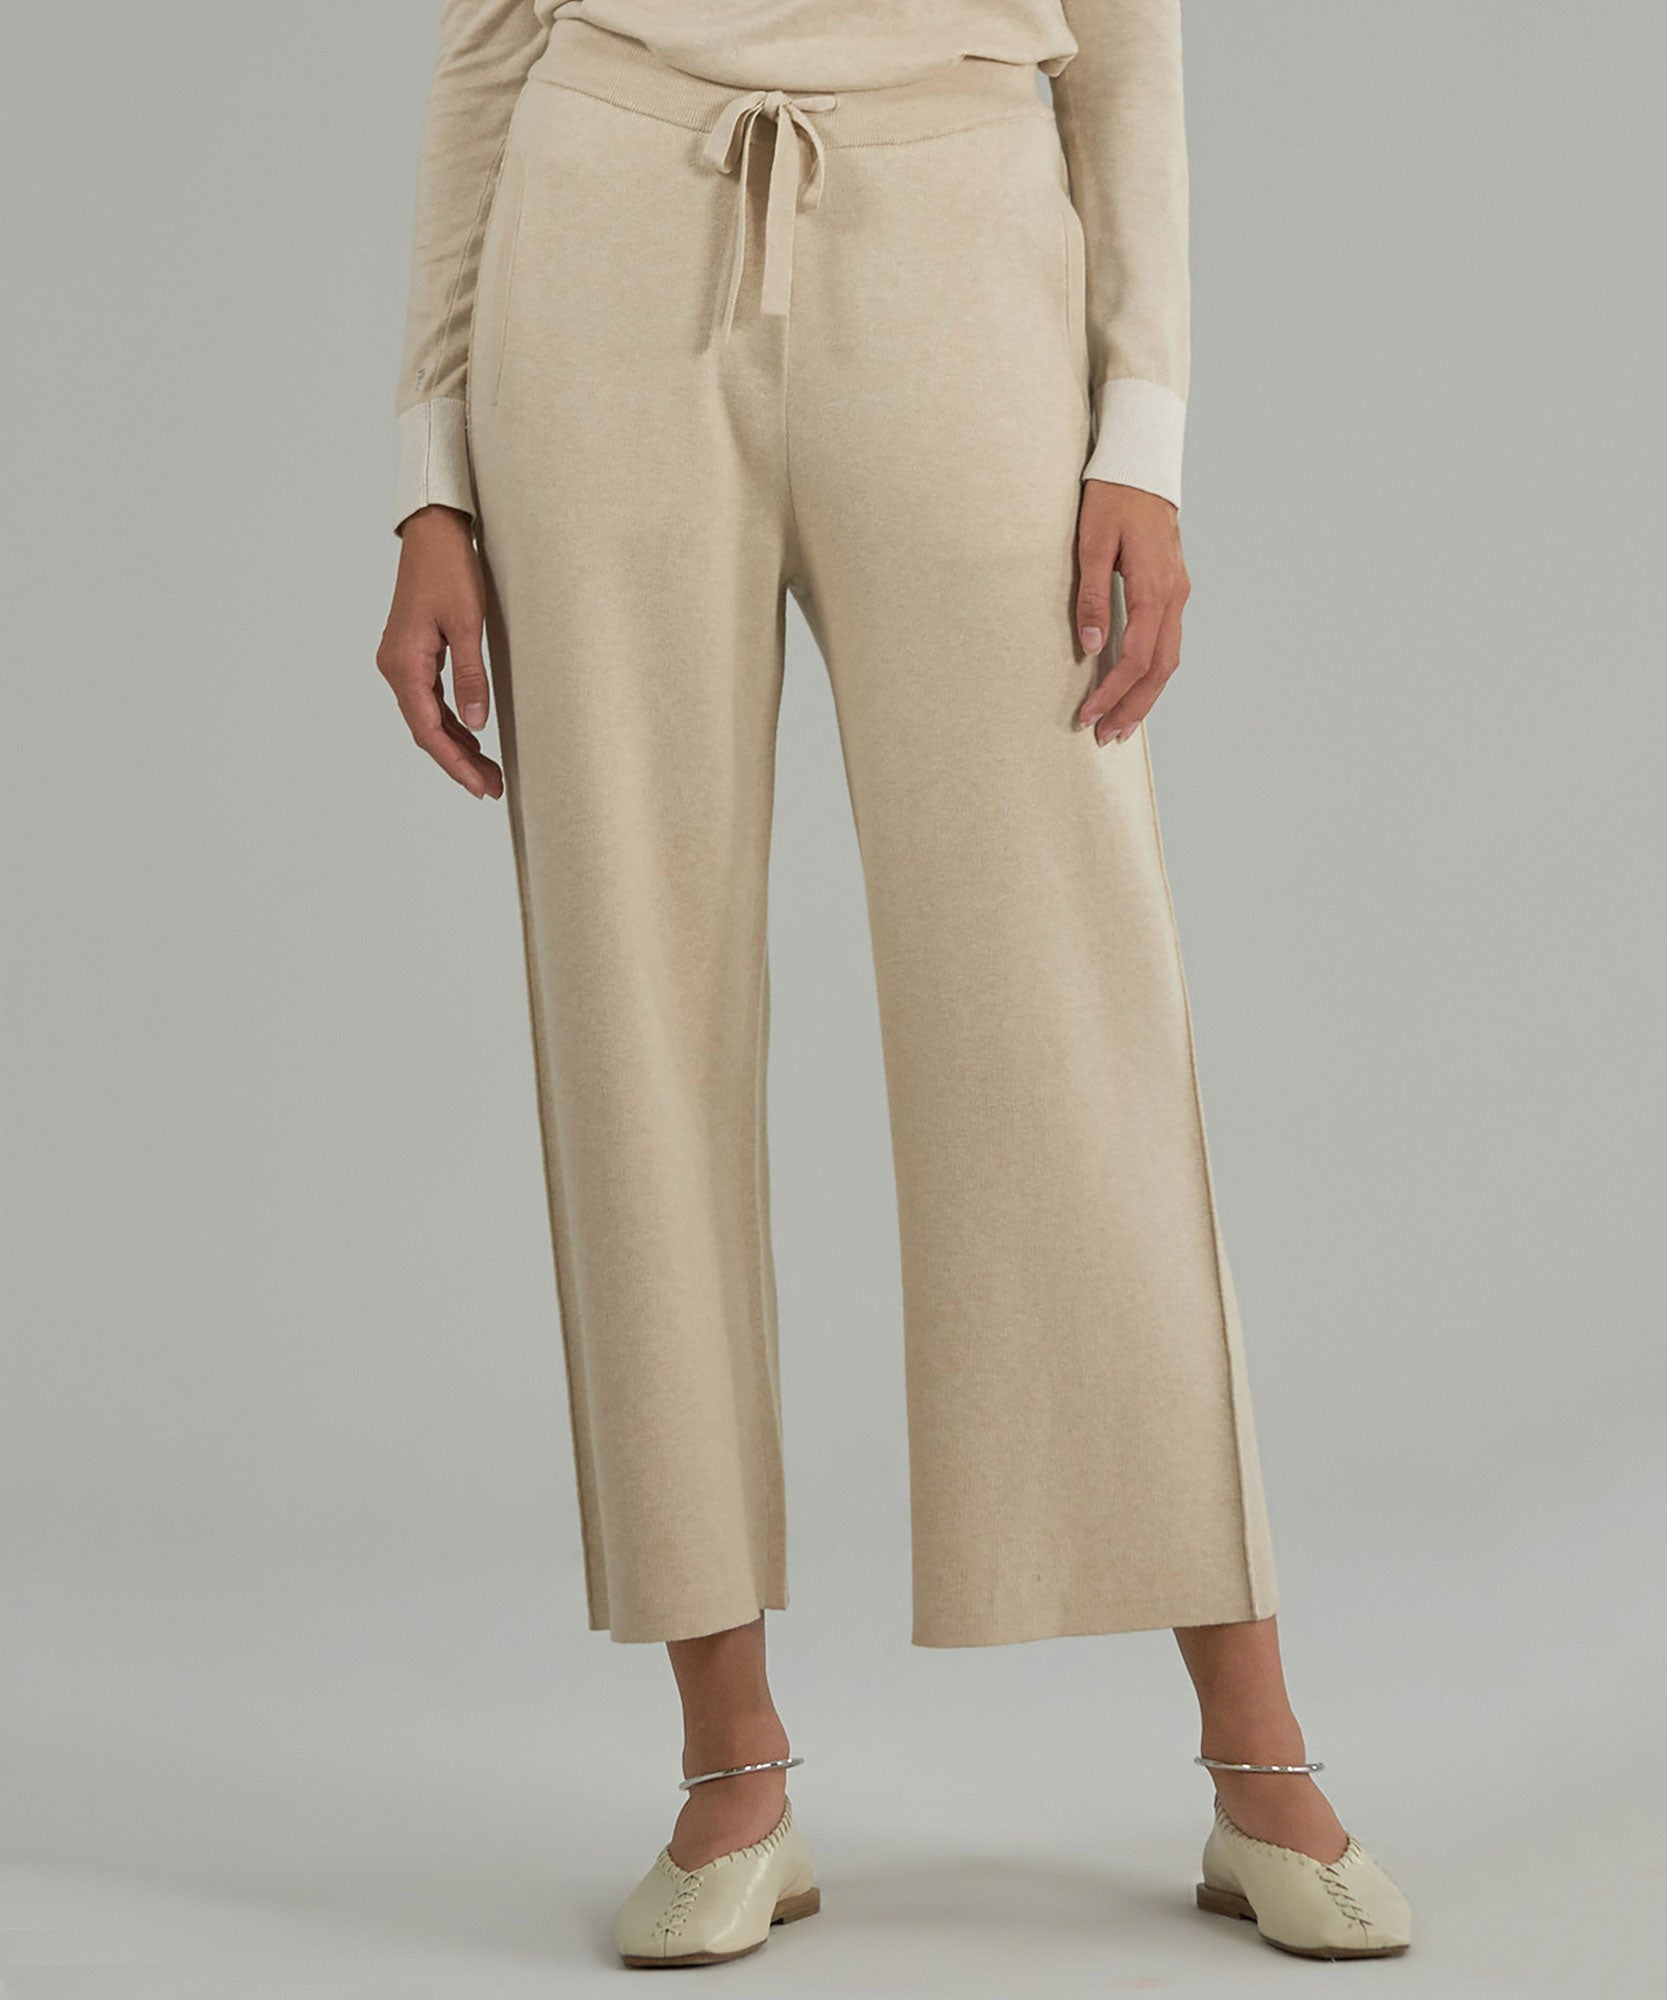 Sandstone/ Chalk Cashmere Combo Blend Sweater Pants - Women's Pants by ATM Anthony Thomas Melillo